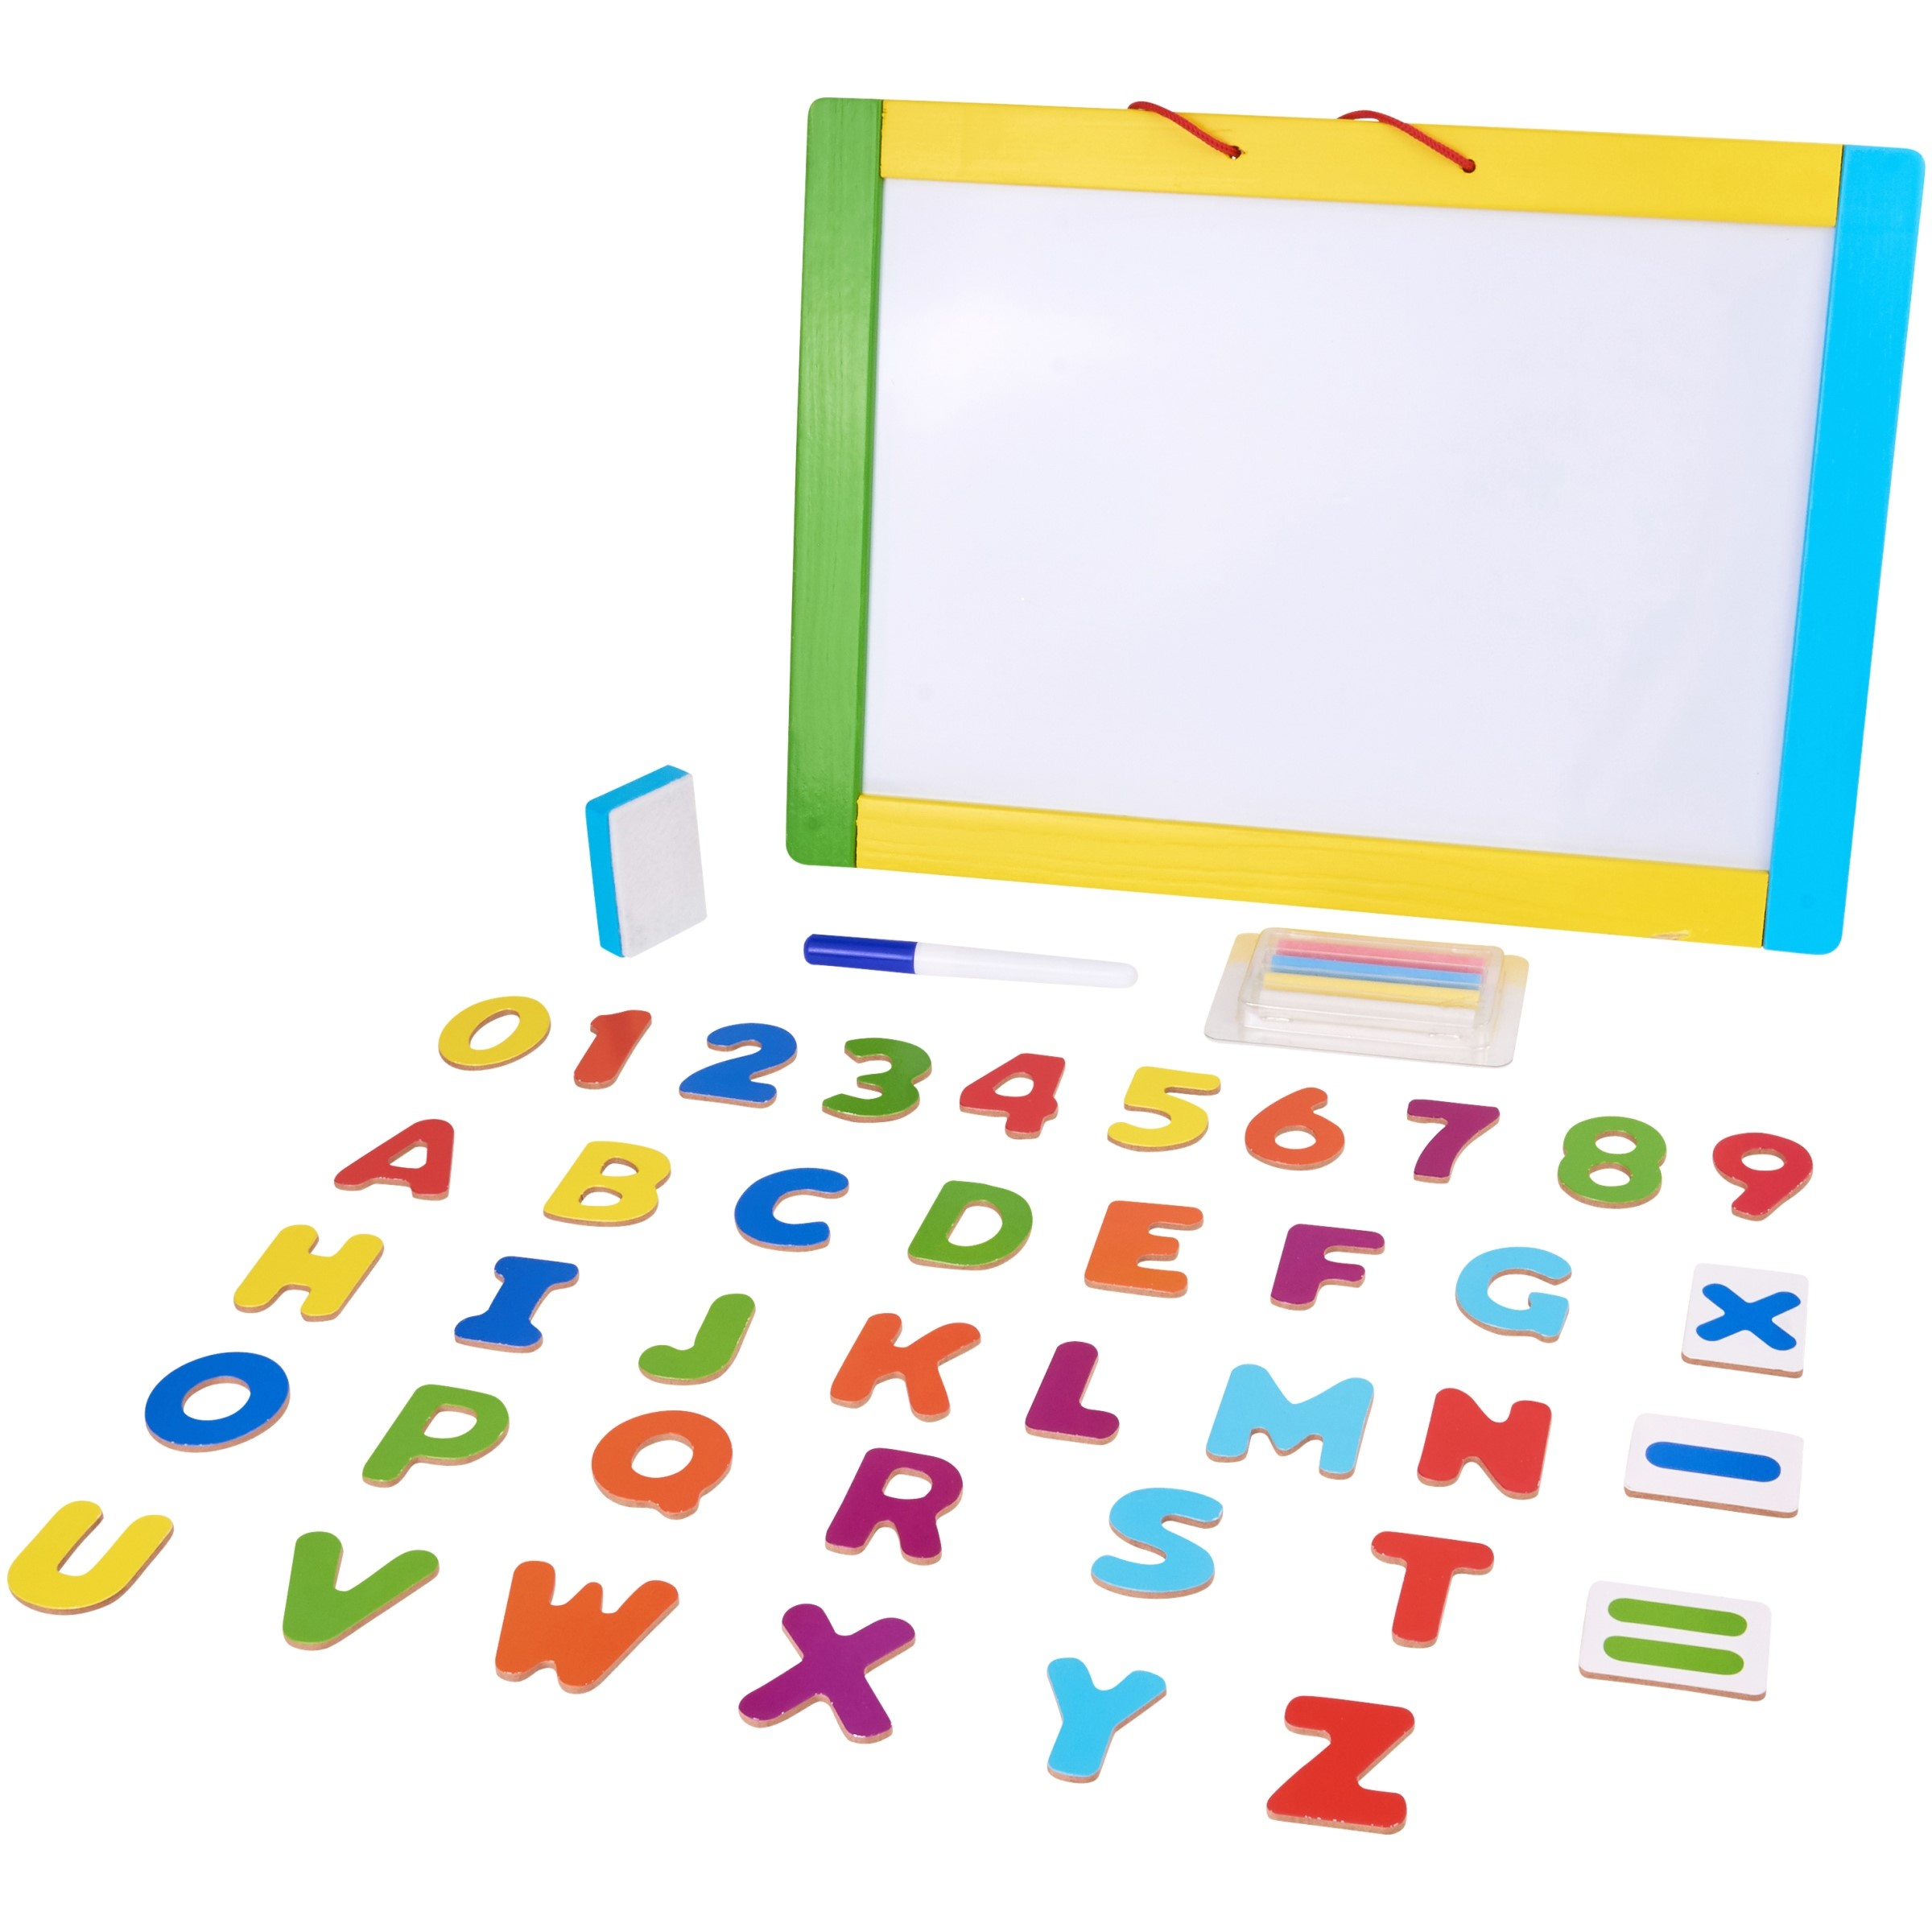 Spark. create. imagine. play double sided learning board, designed for ages 2 and up